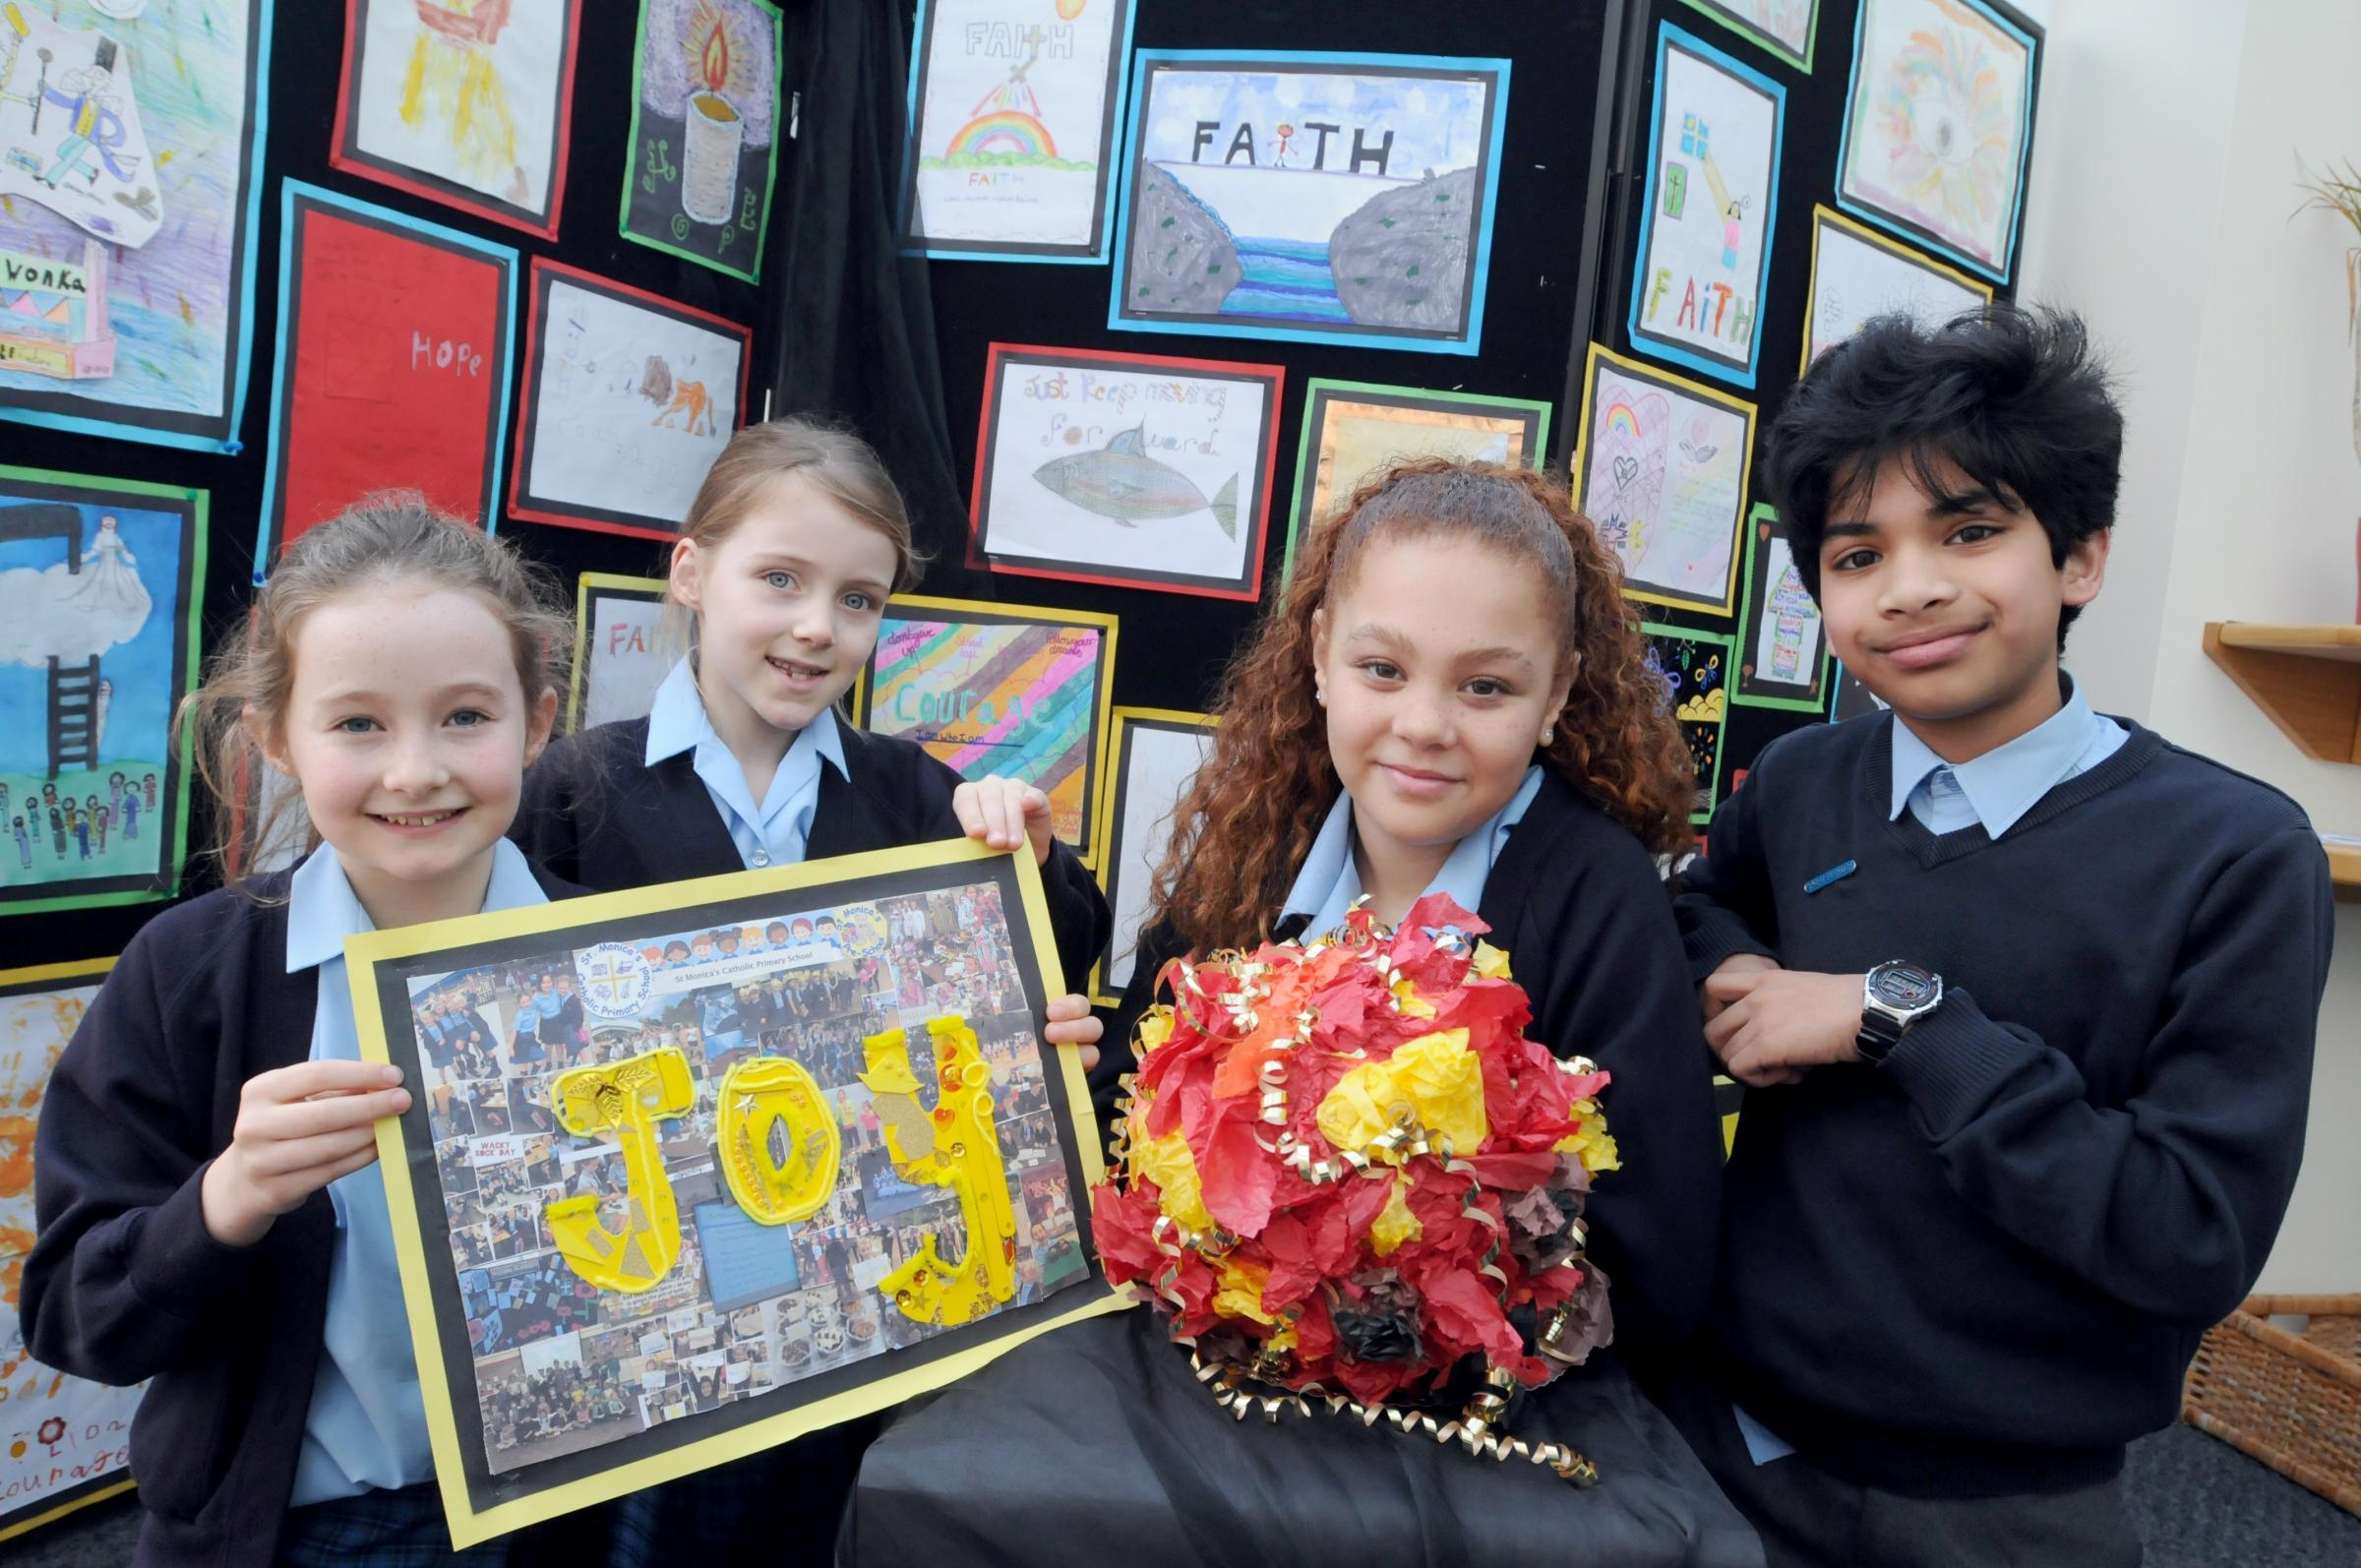 St Monicas art winners L to R Annie Noone, Sienna Dobson, Chola Mai Dakib and Aryan Ashish's.